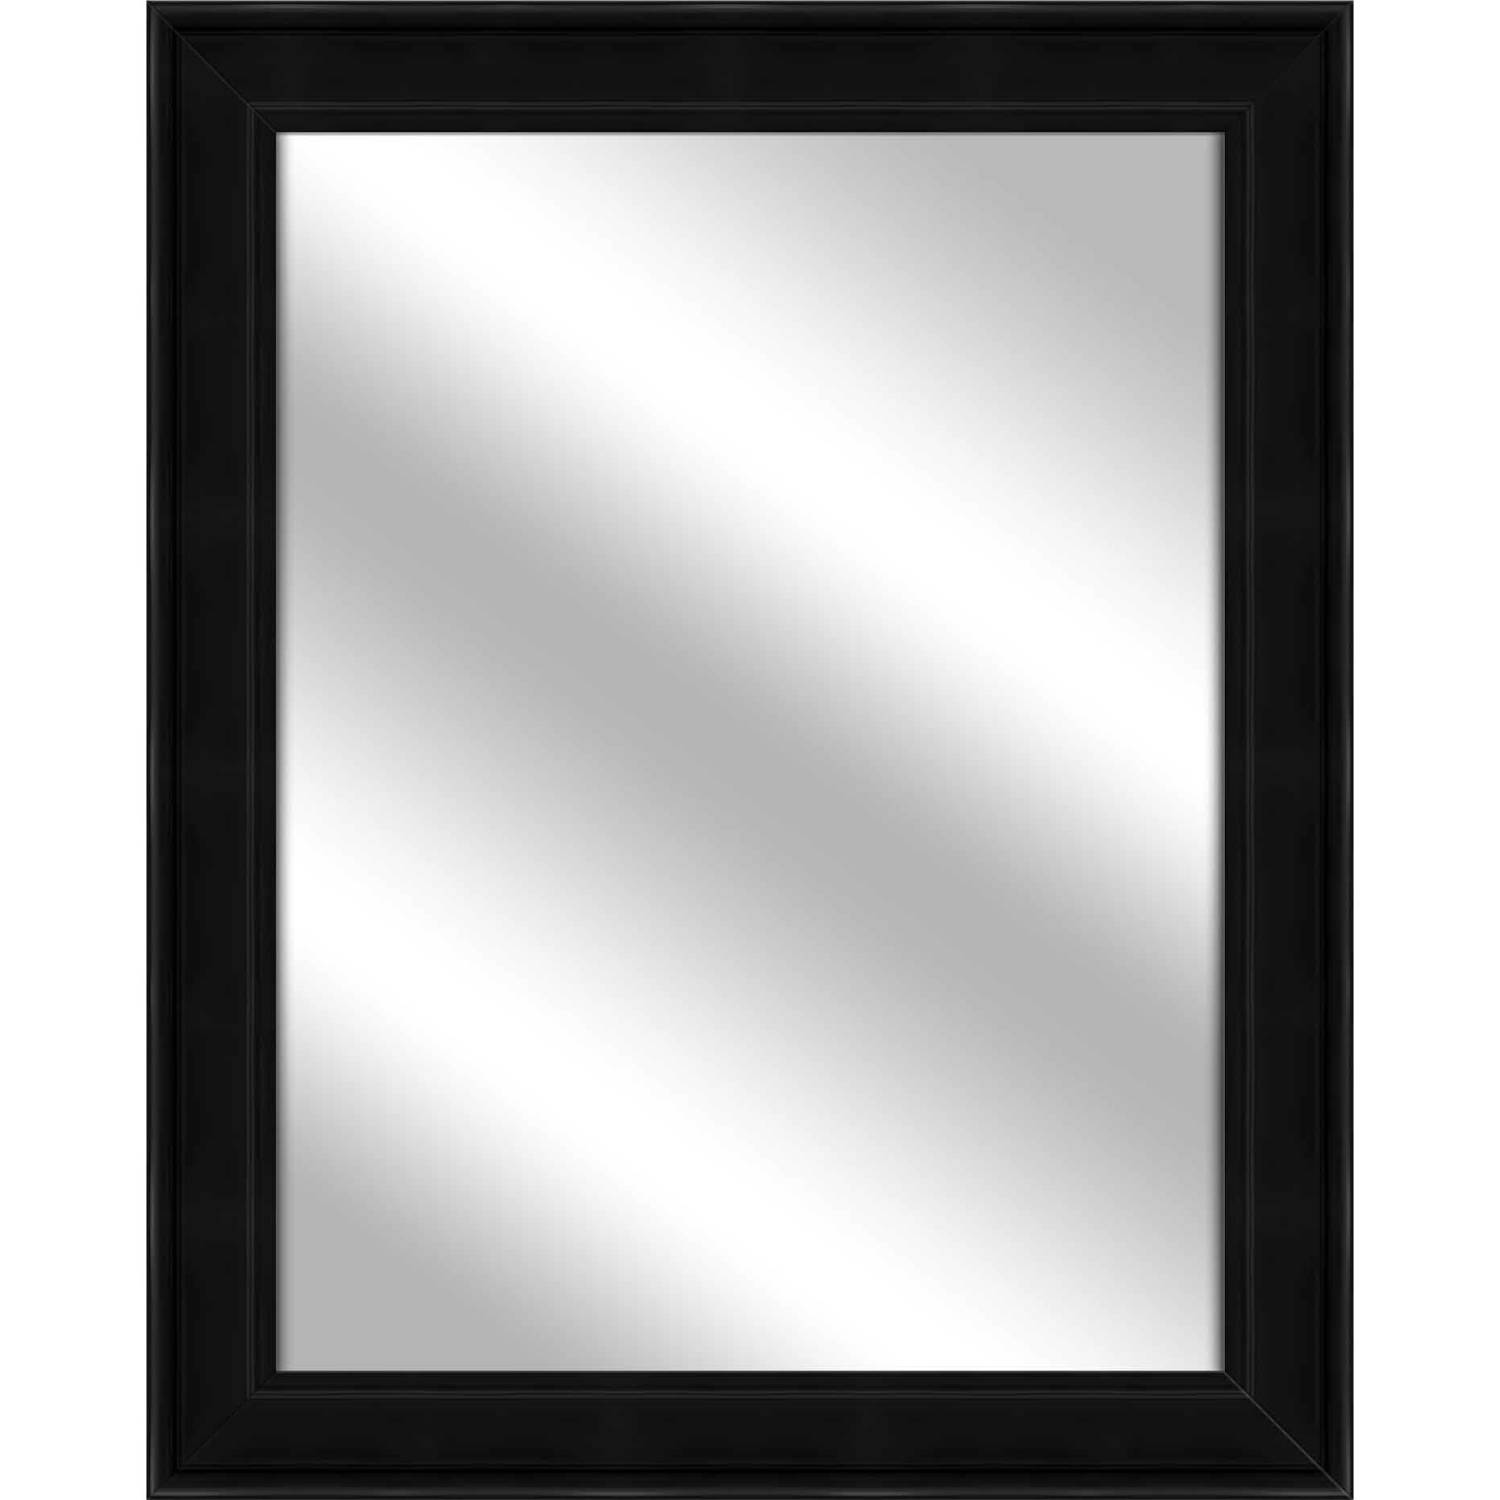 Vanity Mirror, Black, 26.75x32.75 by PTM Images